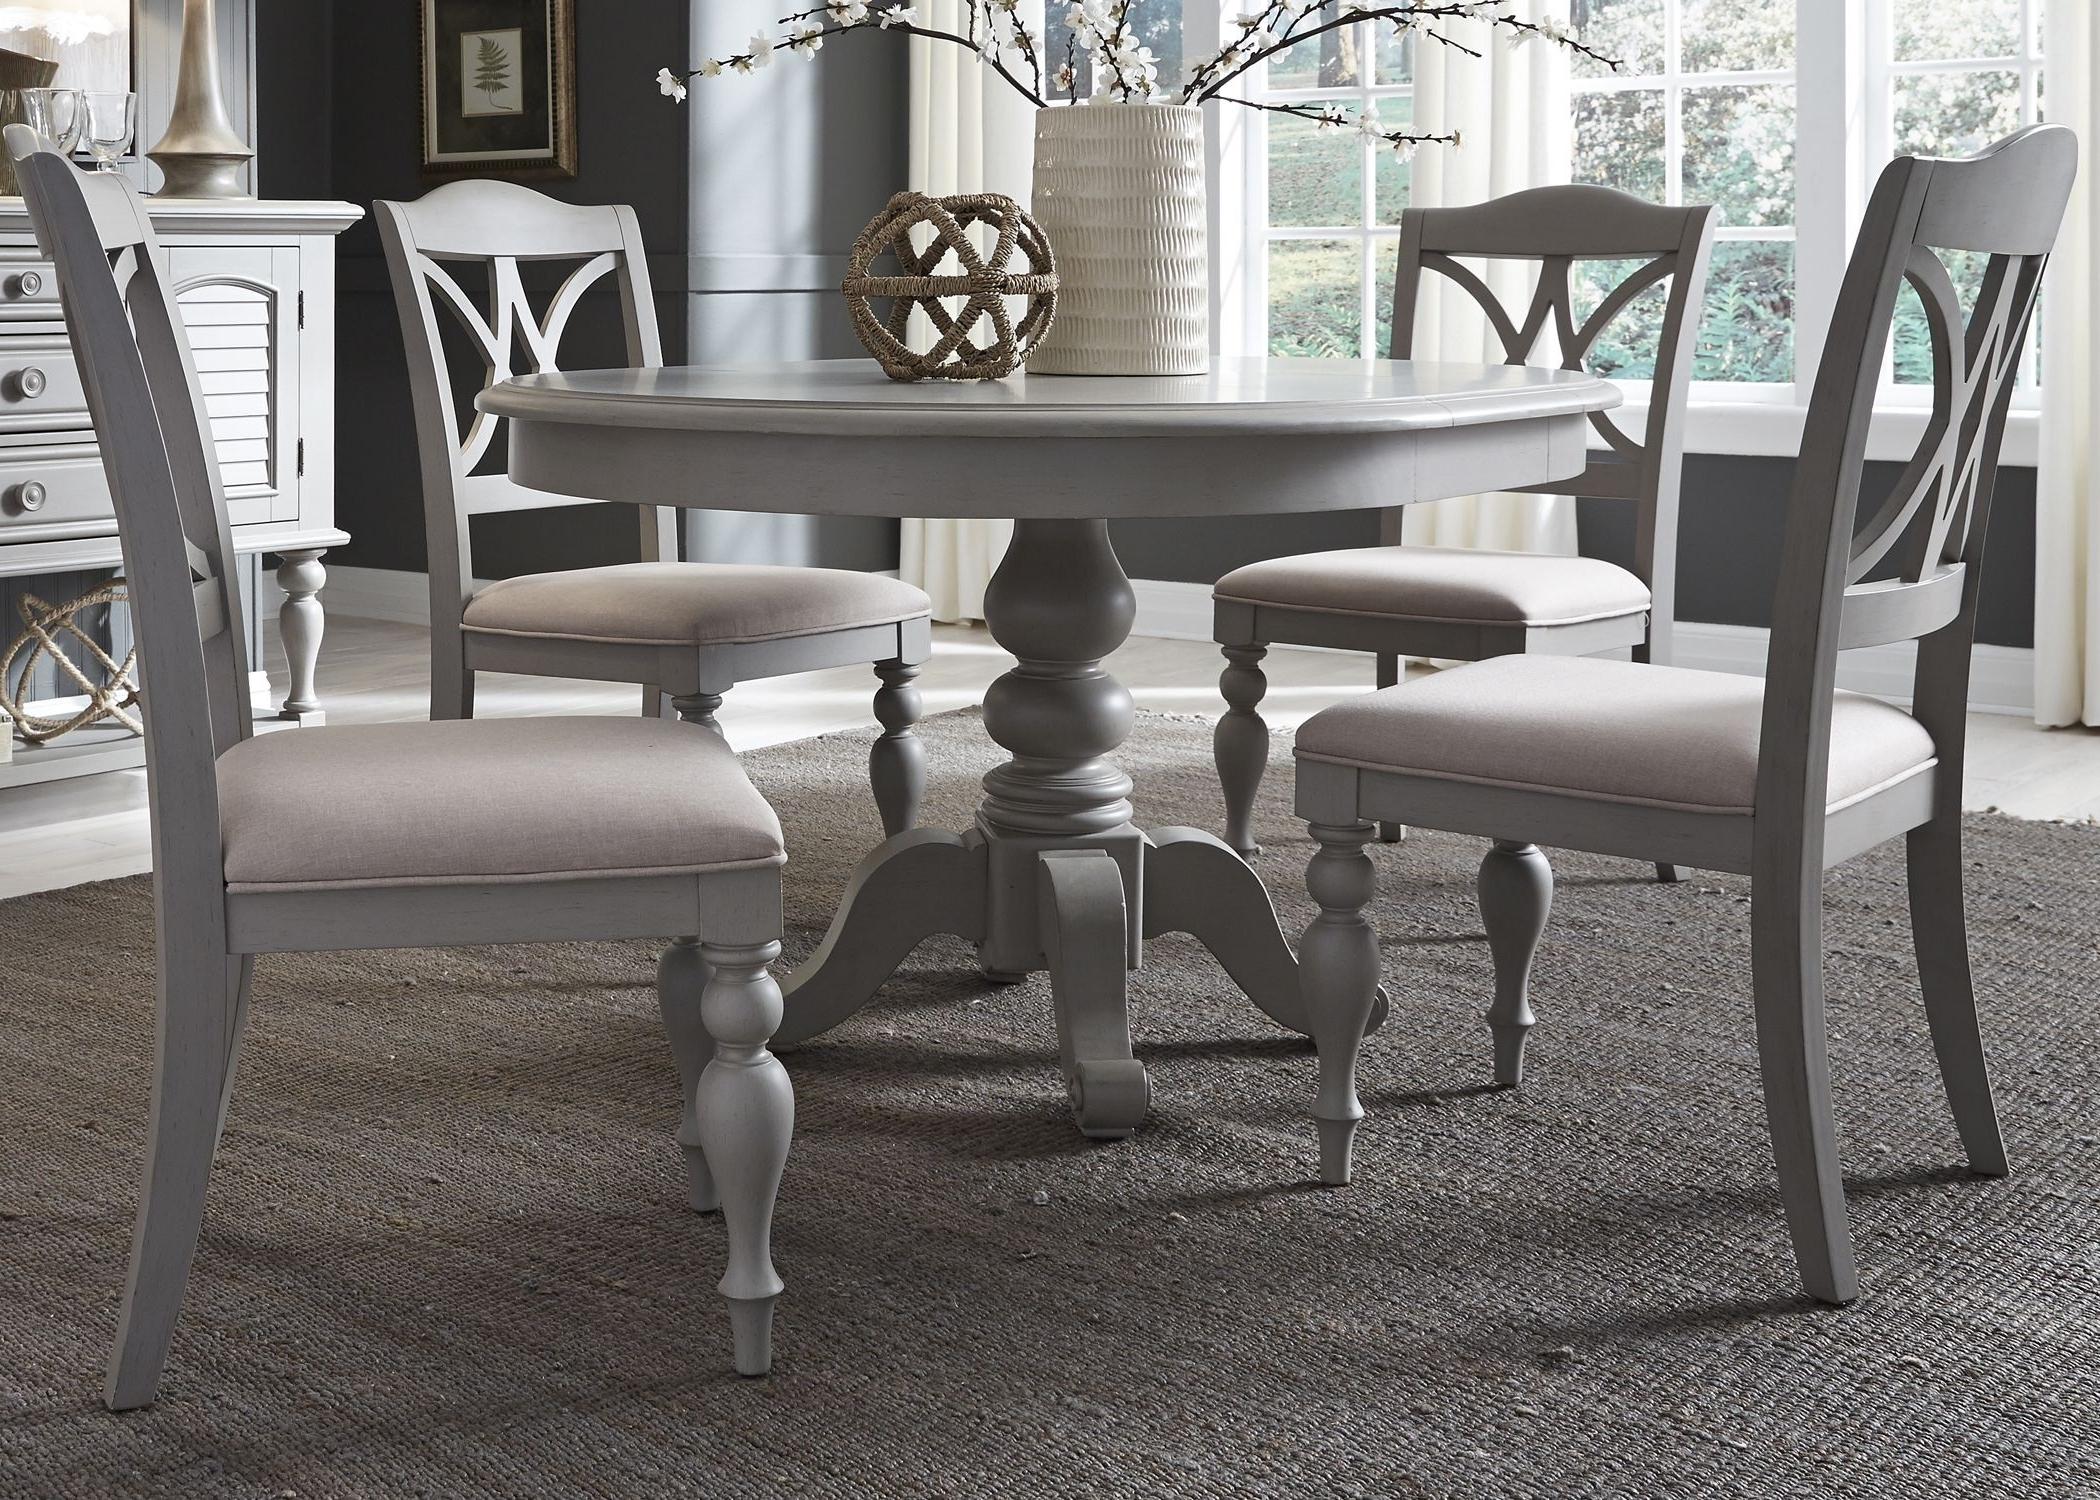 Round Extendable Dining Tables And Chairs With Most Recent Liberty Summer House Dove Grey Round Extendable Dining Table (View 16 of 25)